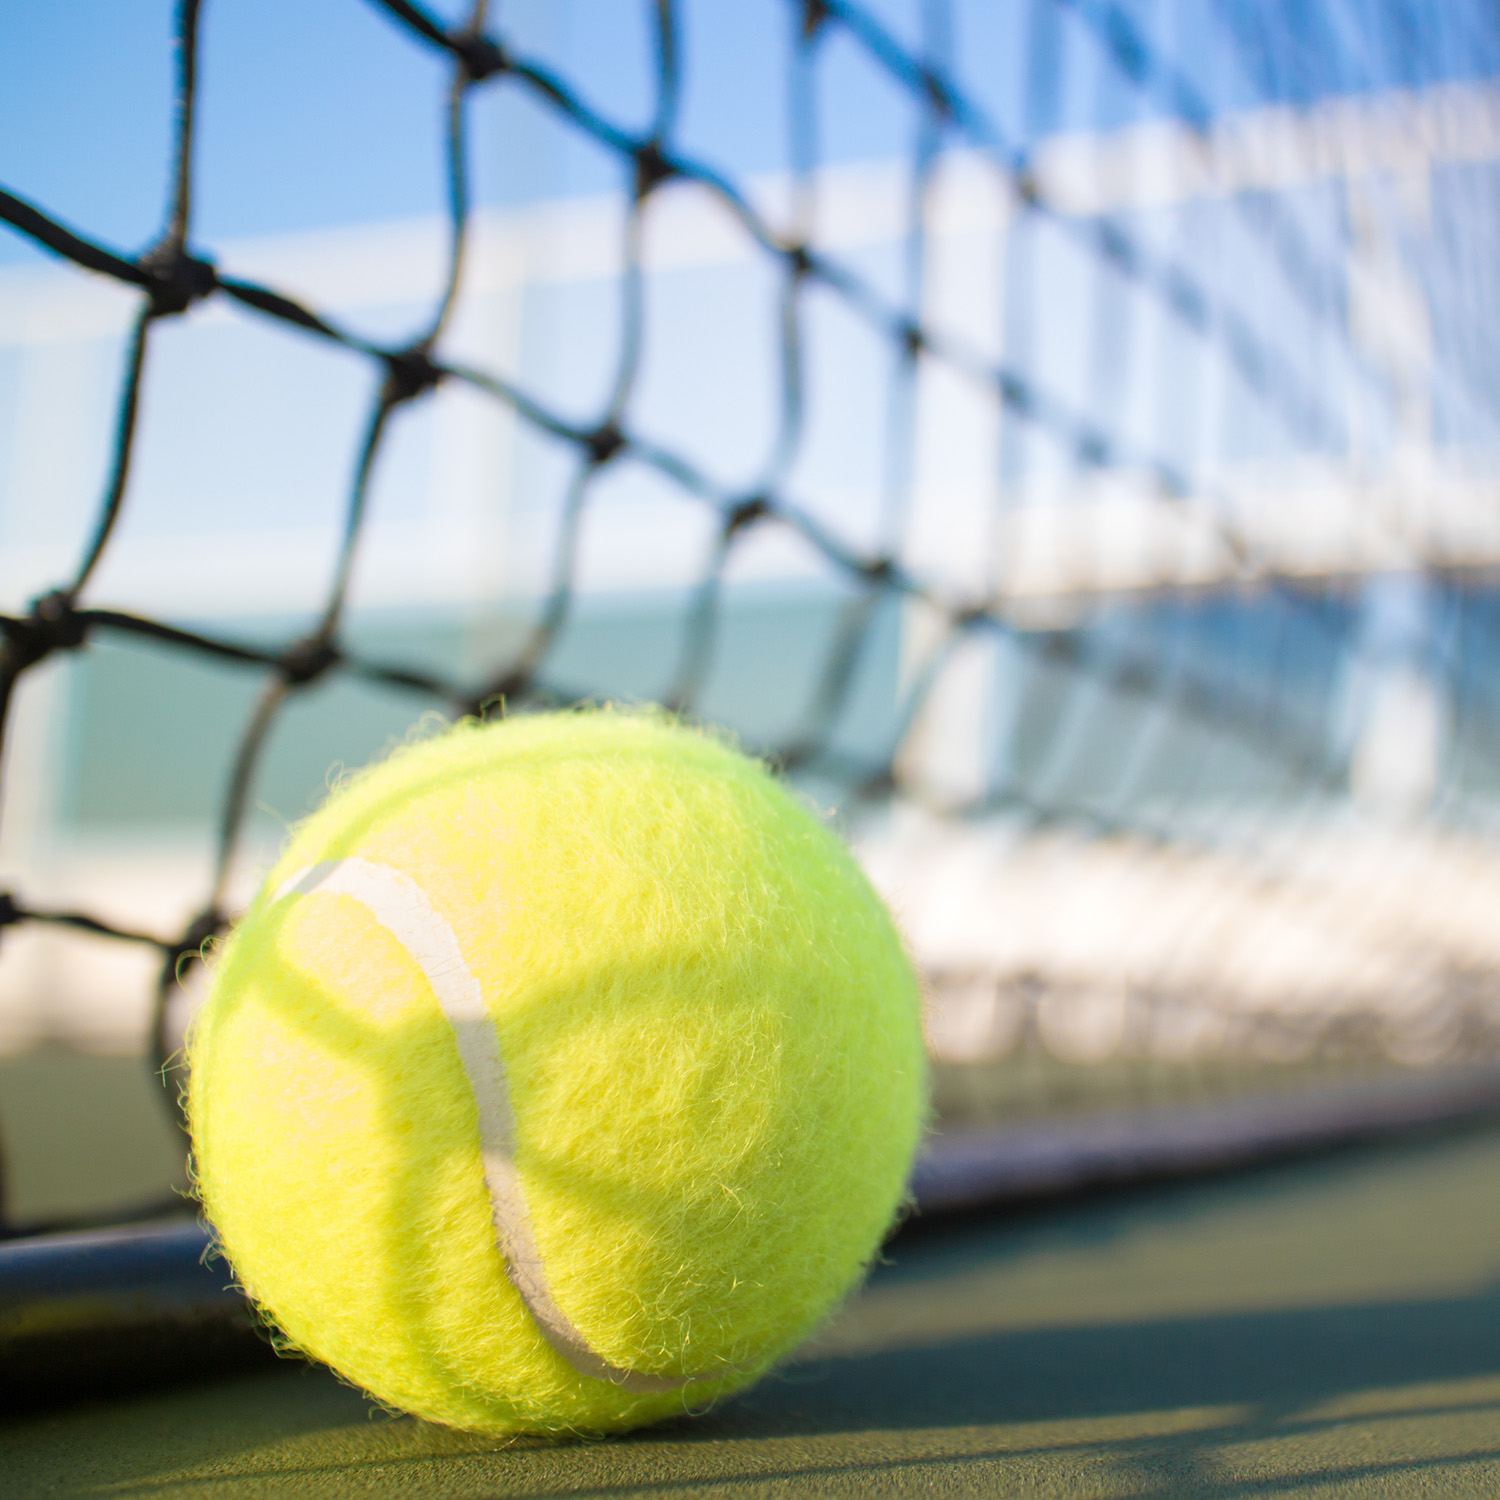 Close-up of yellow tennis ball laying next to bottom of net